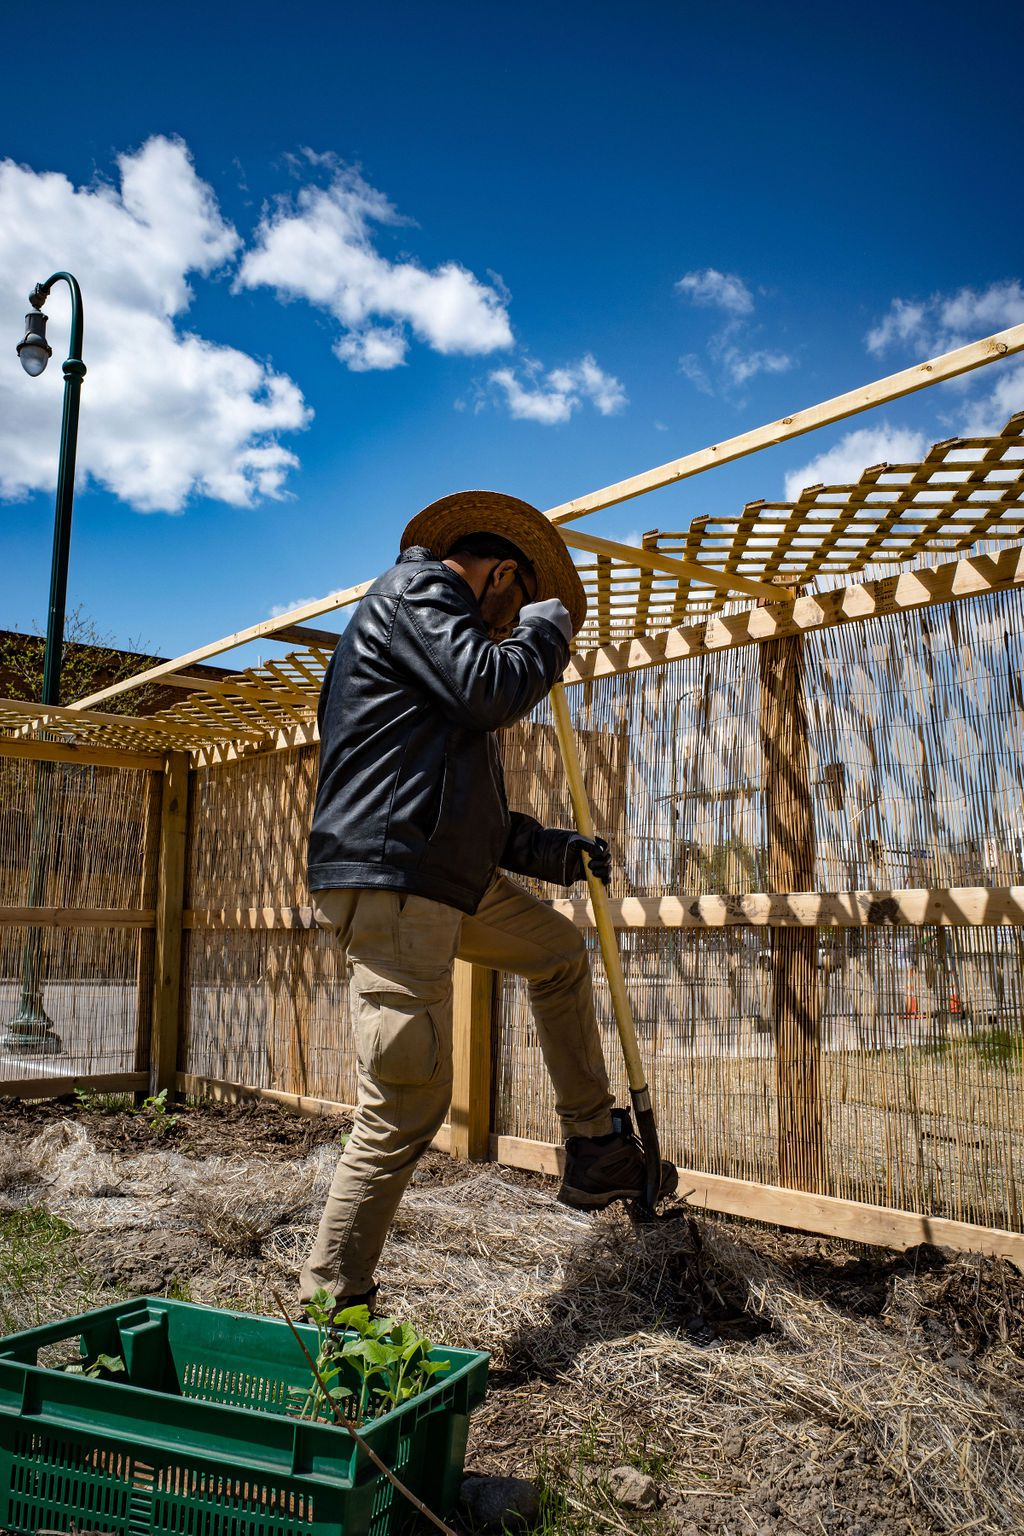 Man wearing hat digging into soil by a fence.